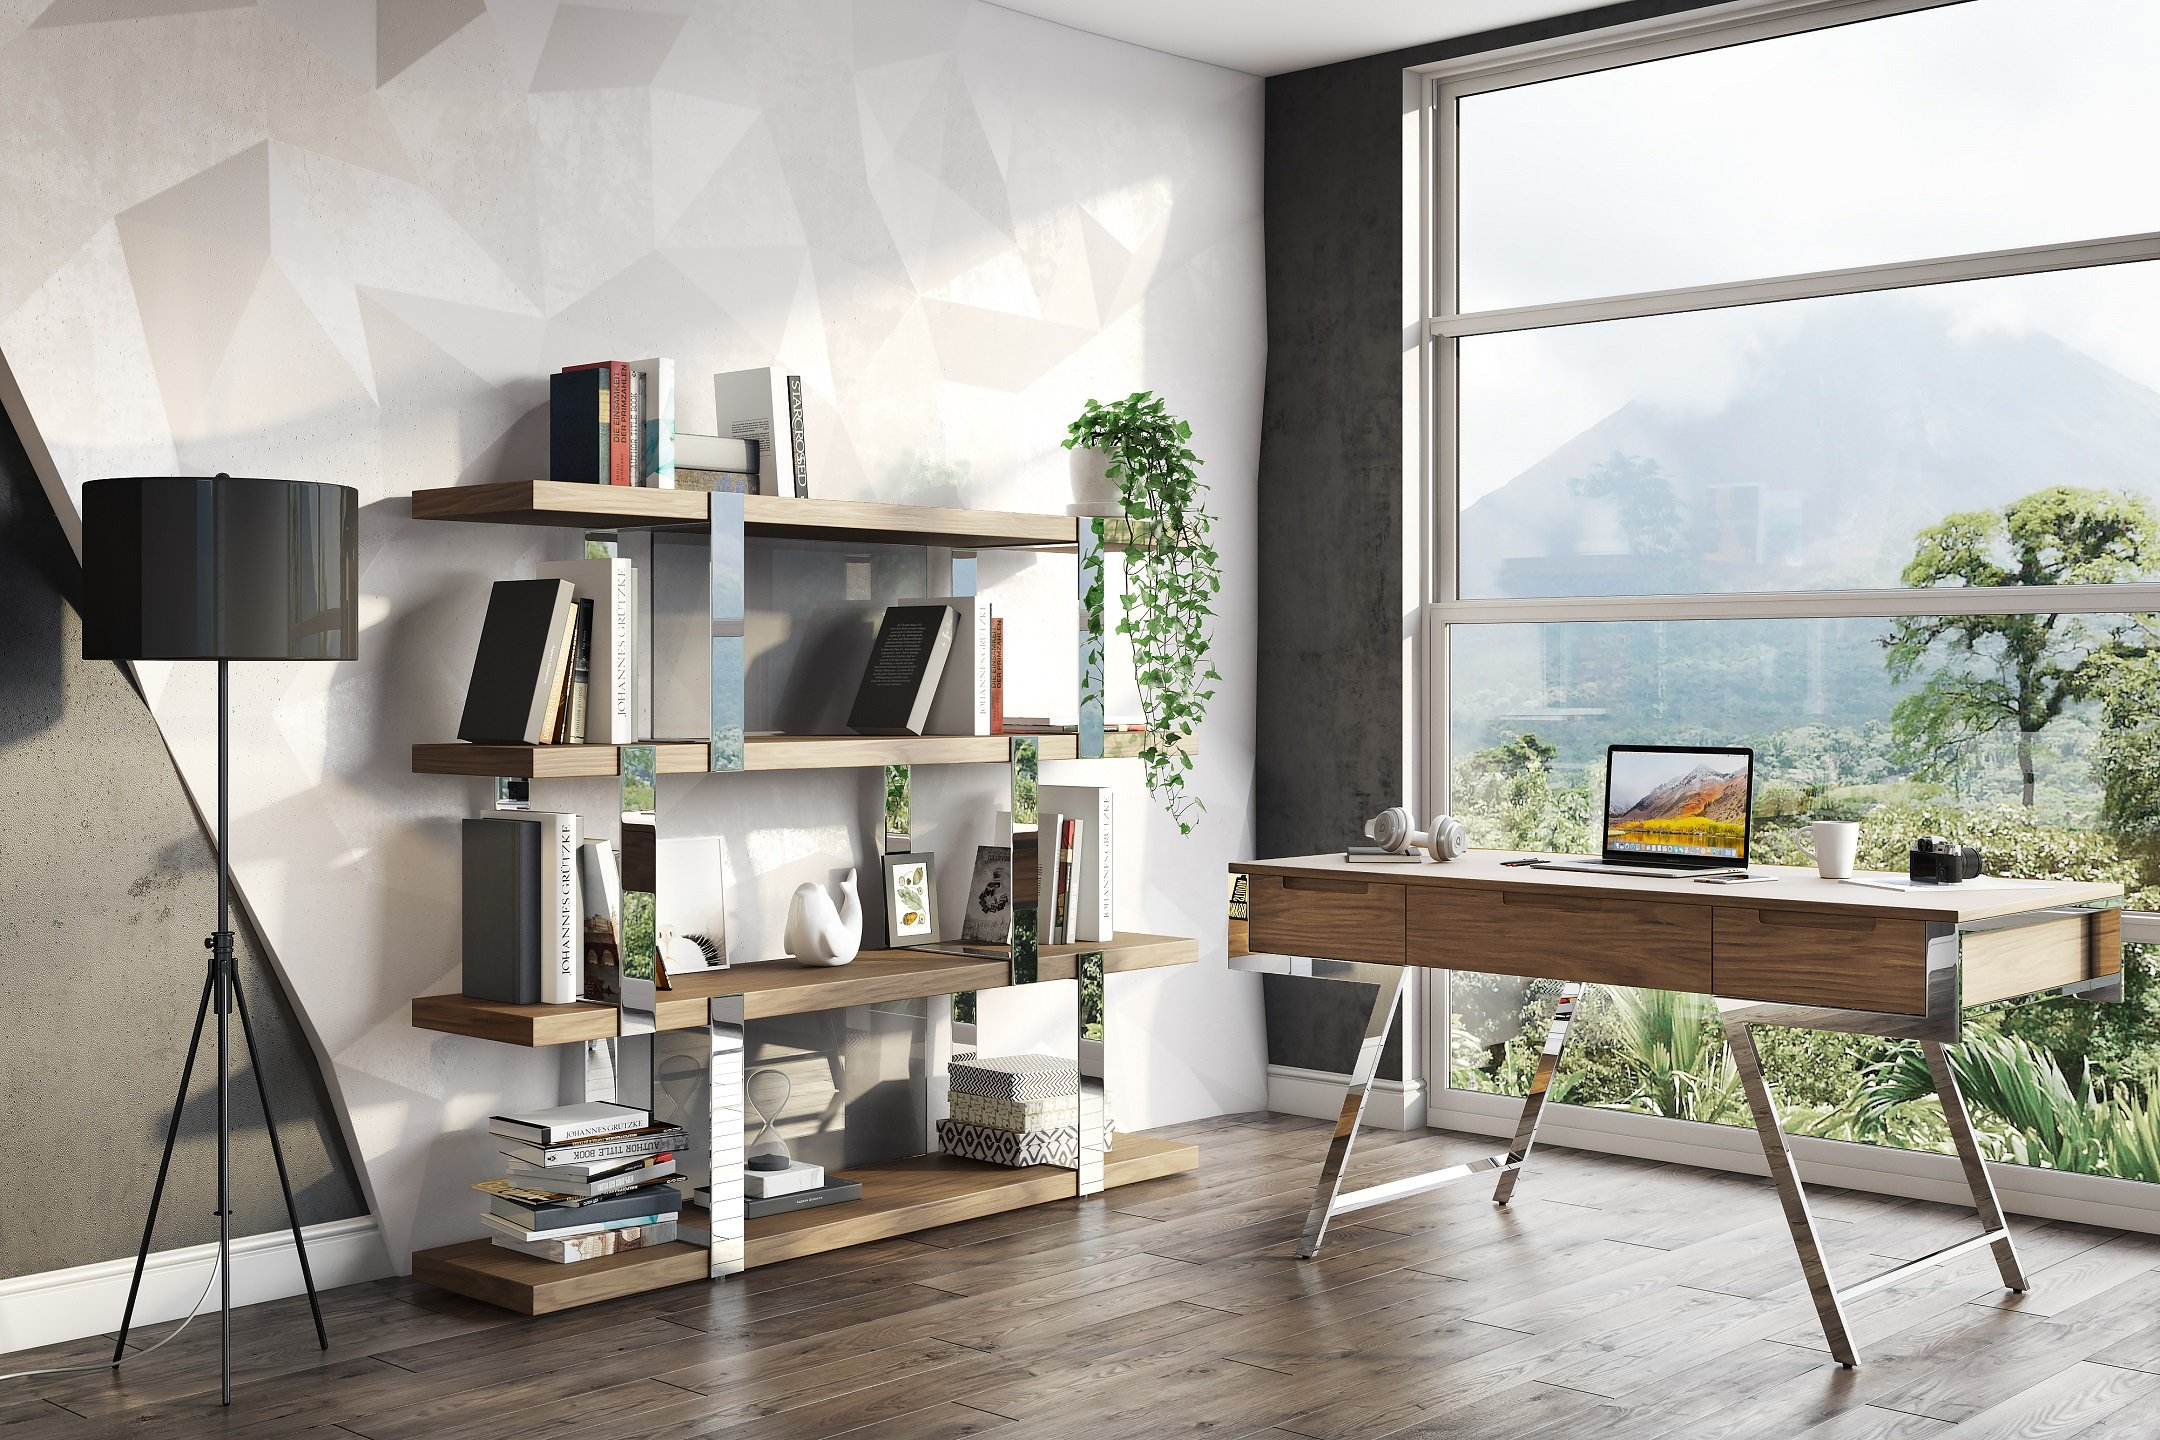 3D Visualization of Home Office Furniture in Context